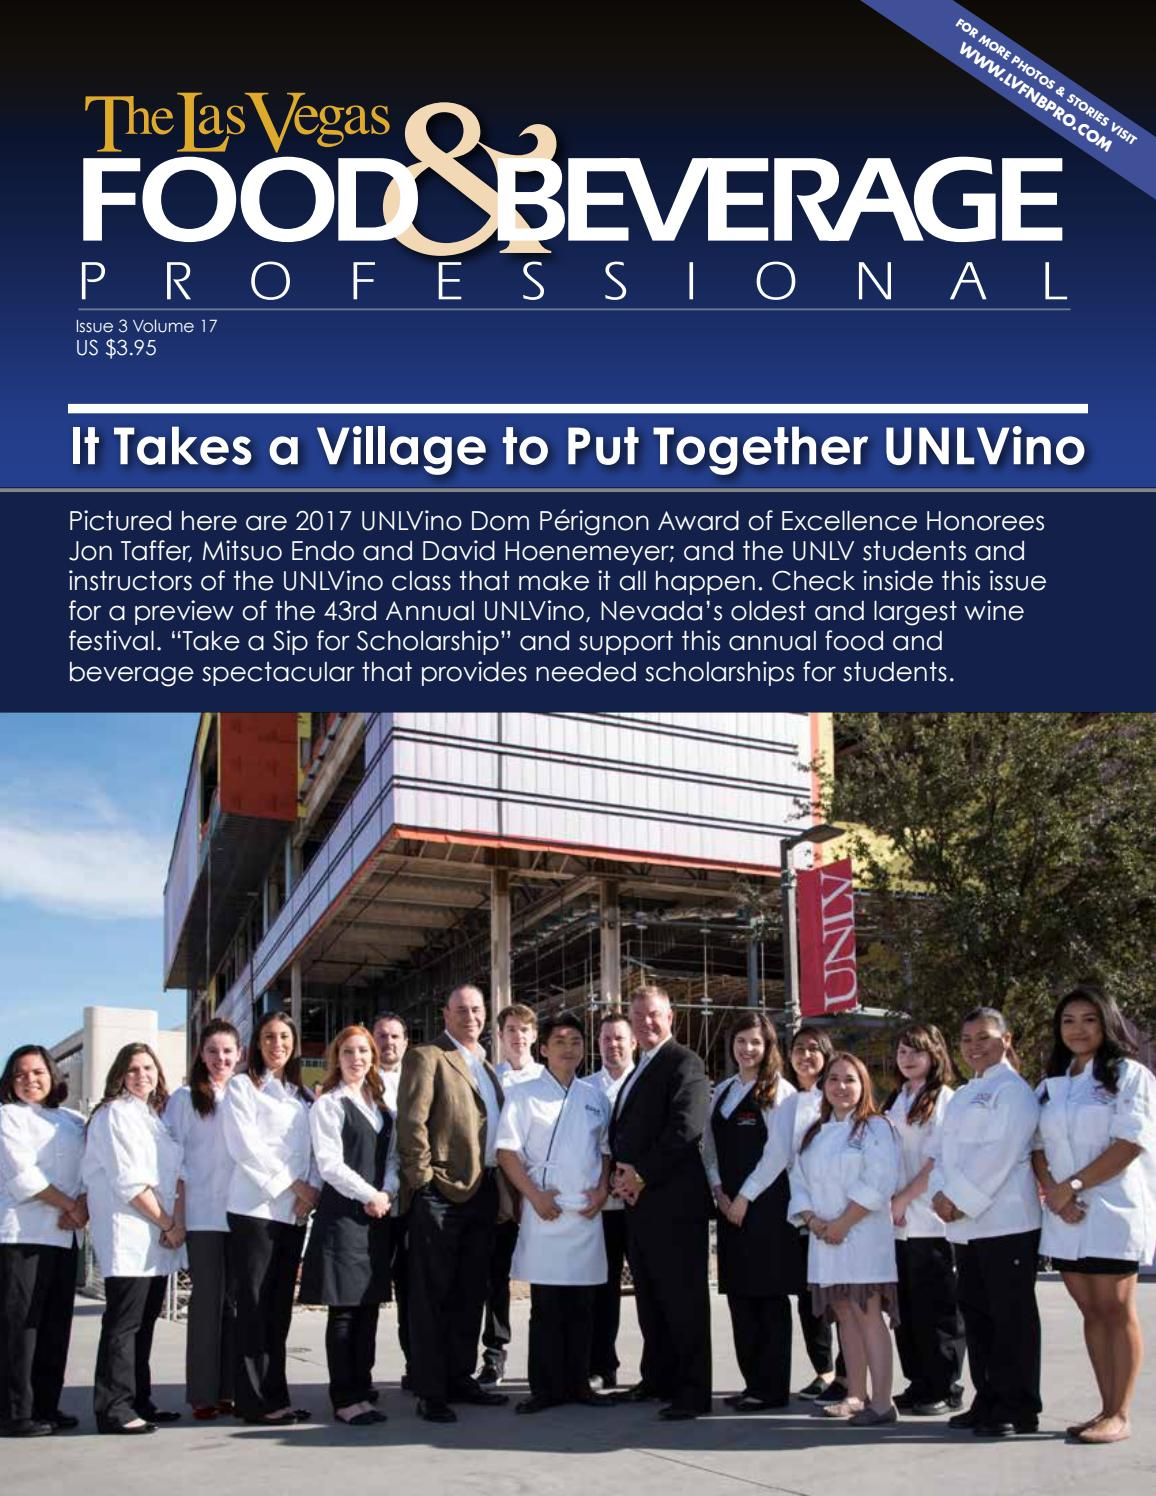 March 2017 The Las Vegas Food Beverage Professional By The Las